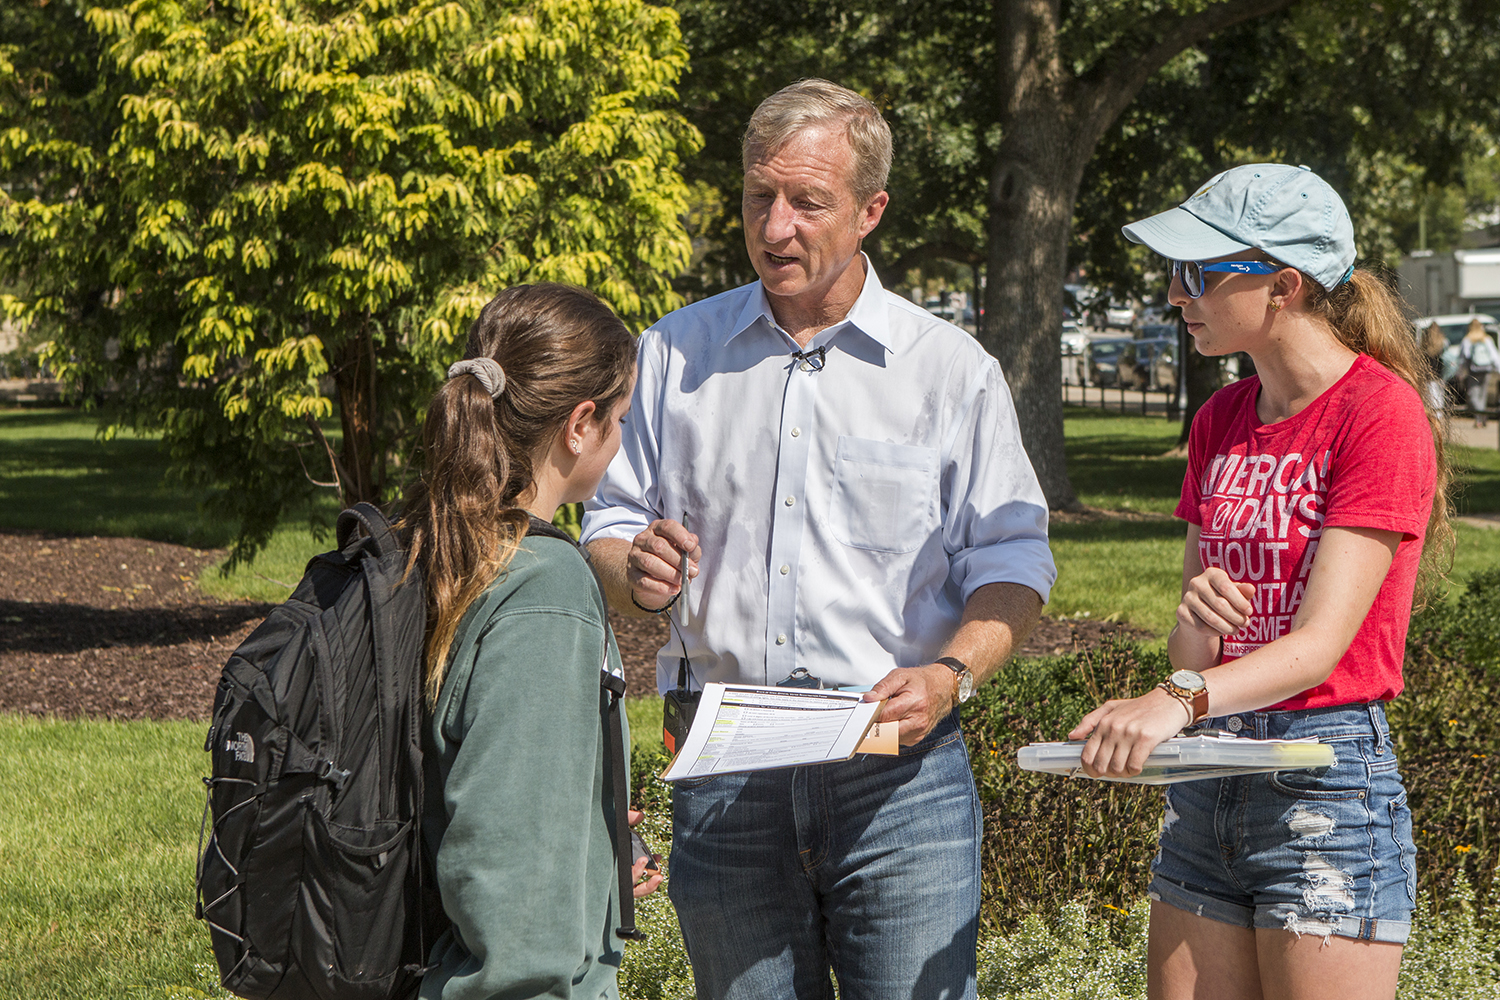 NextGen Founder Tom Steyer discusses voting with students at the Pentacrest on Thursday, Sept. 20, 2018. The organization works to engage students and to help them register to vote in November.